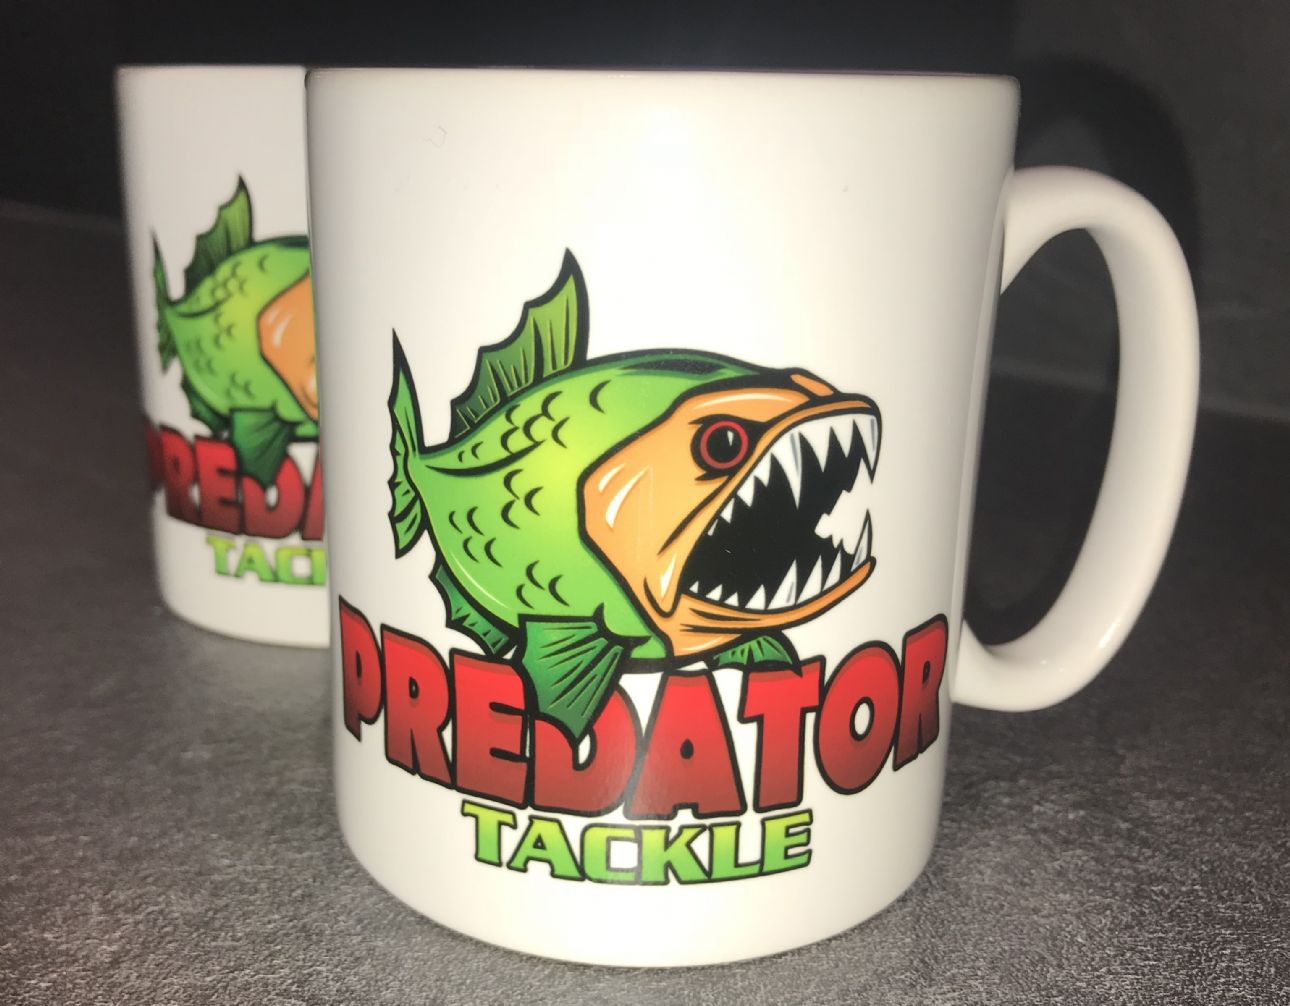 Predator Tackle Mugs -